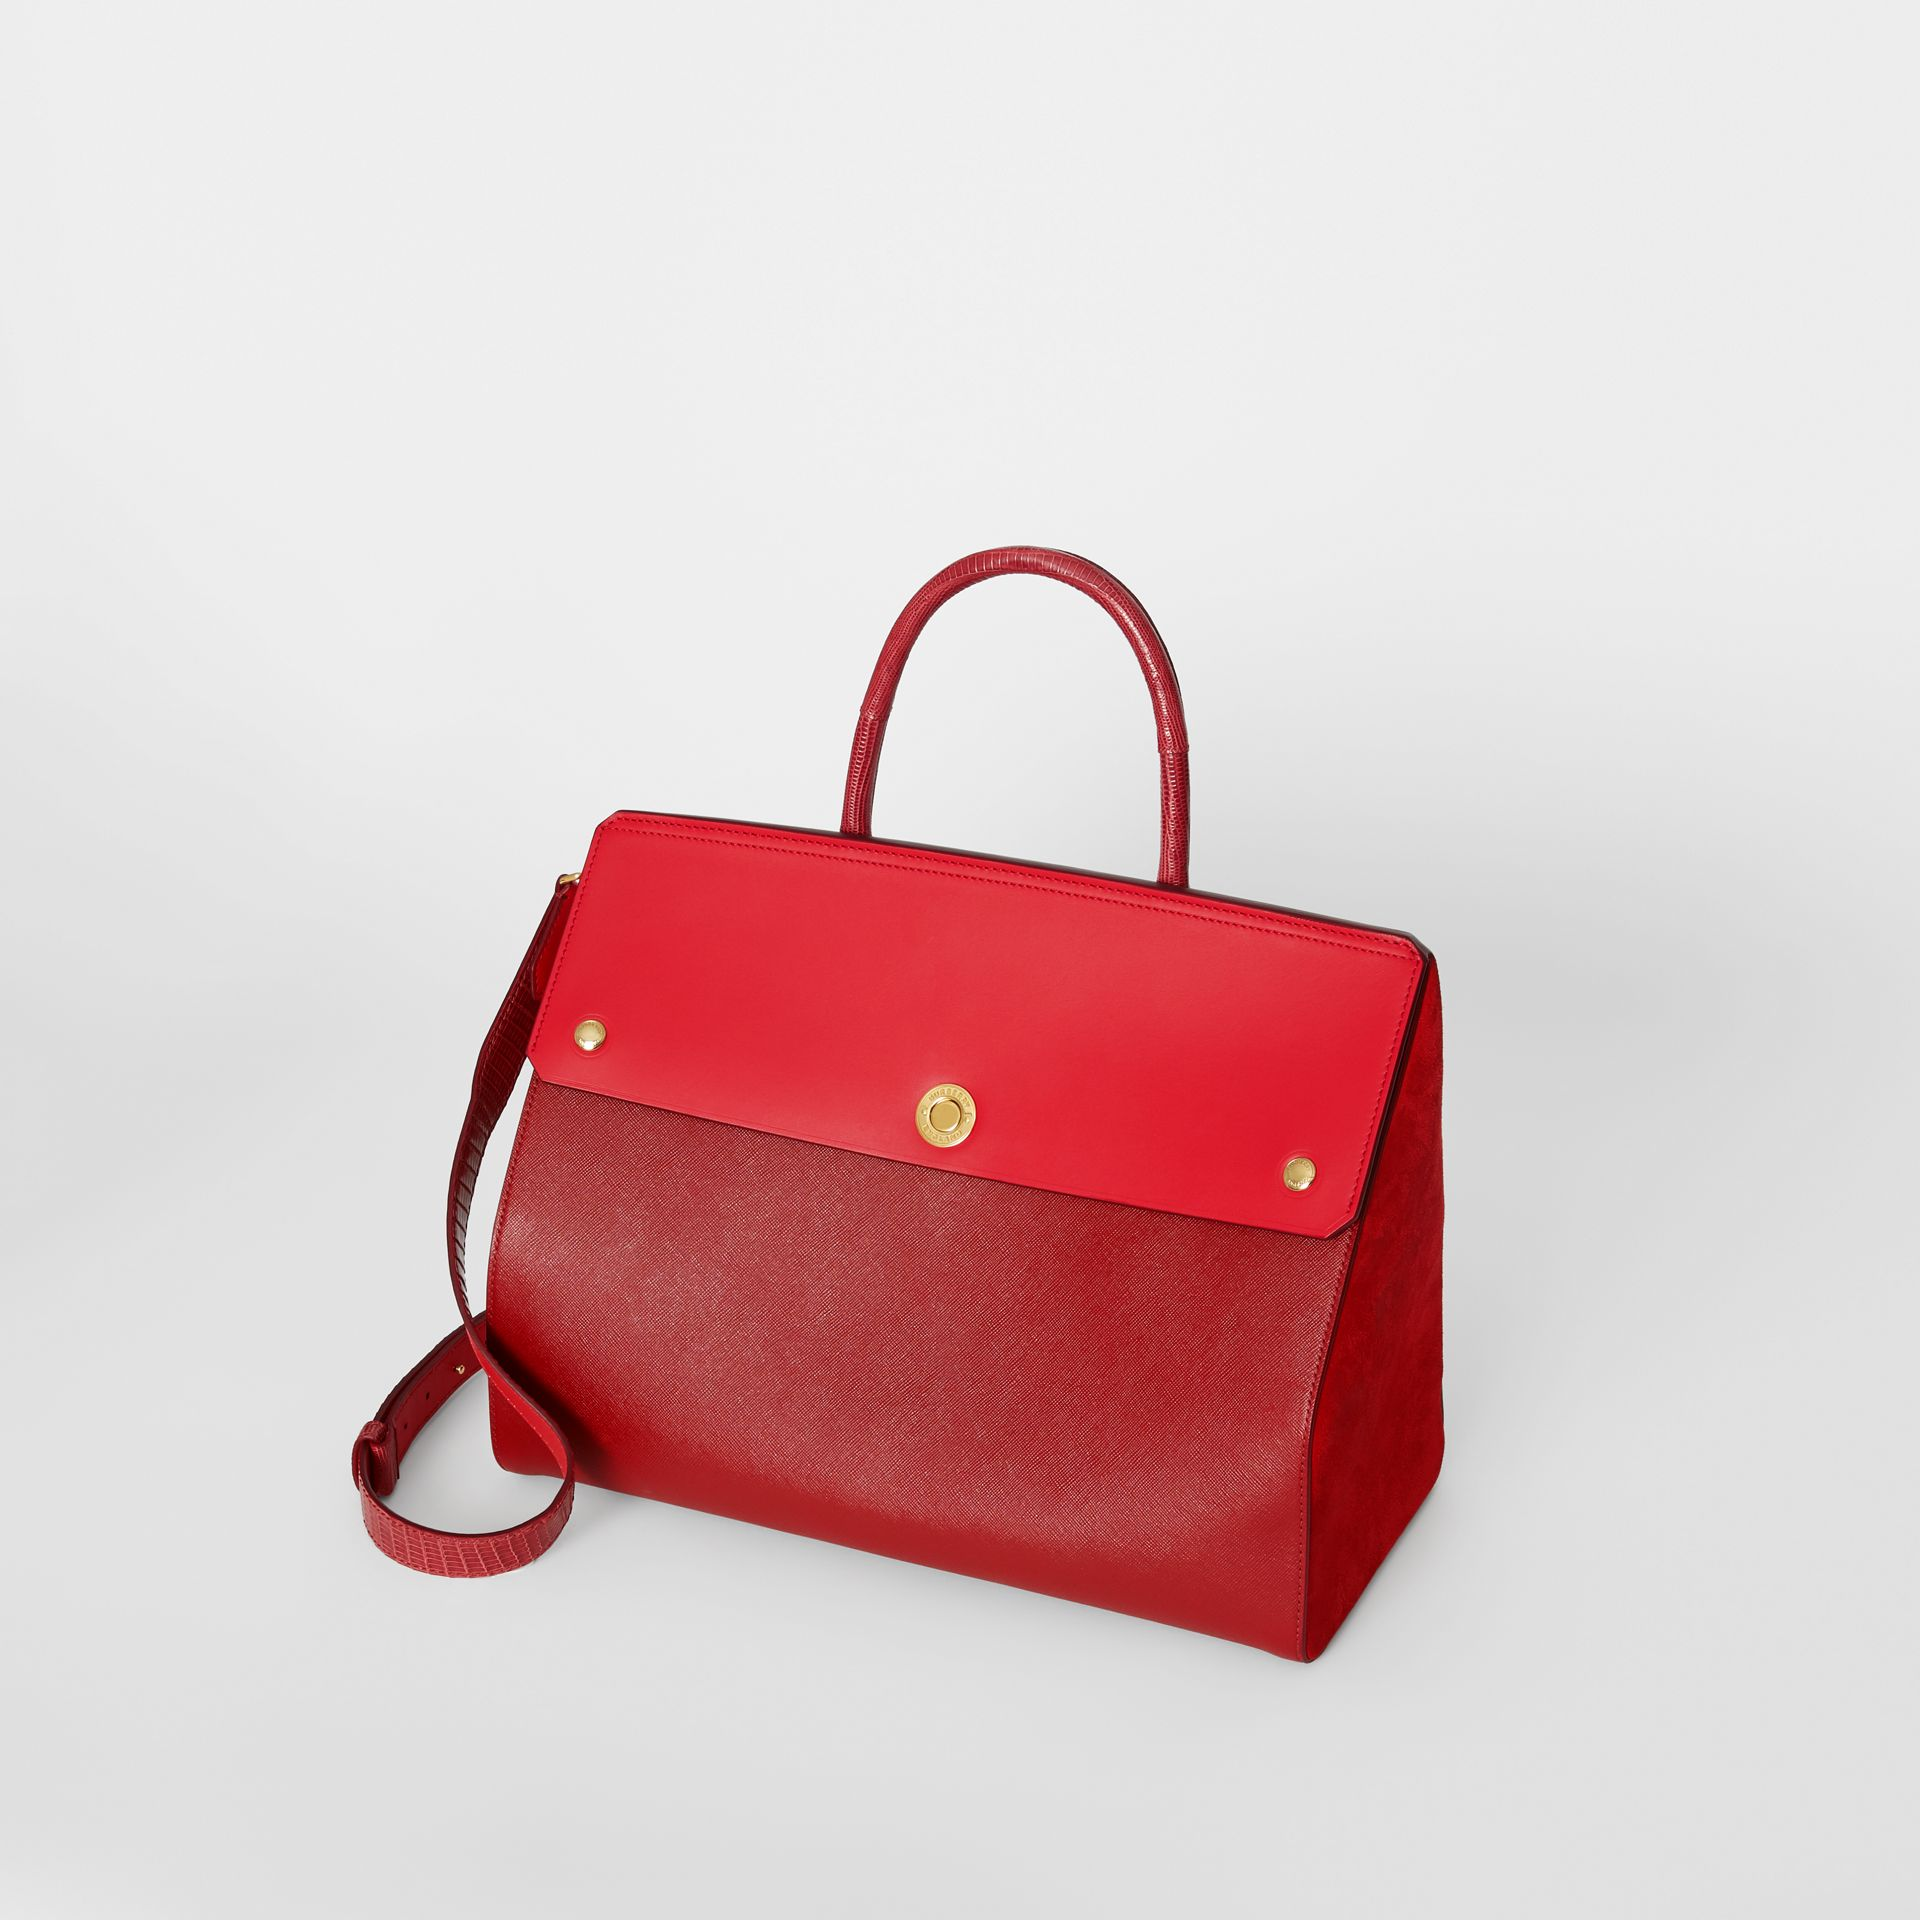 Small Leather and Suede Elizabeth Bag in Bright Military Red - Women | Burberry Singapore - gallery image 2